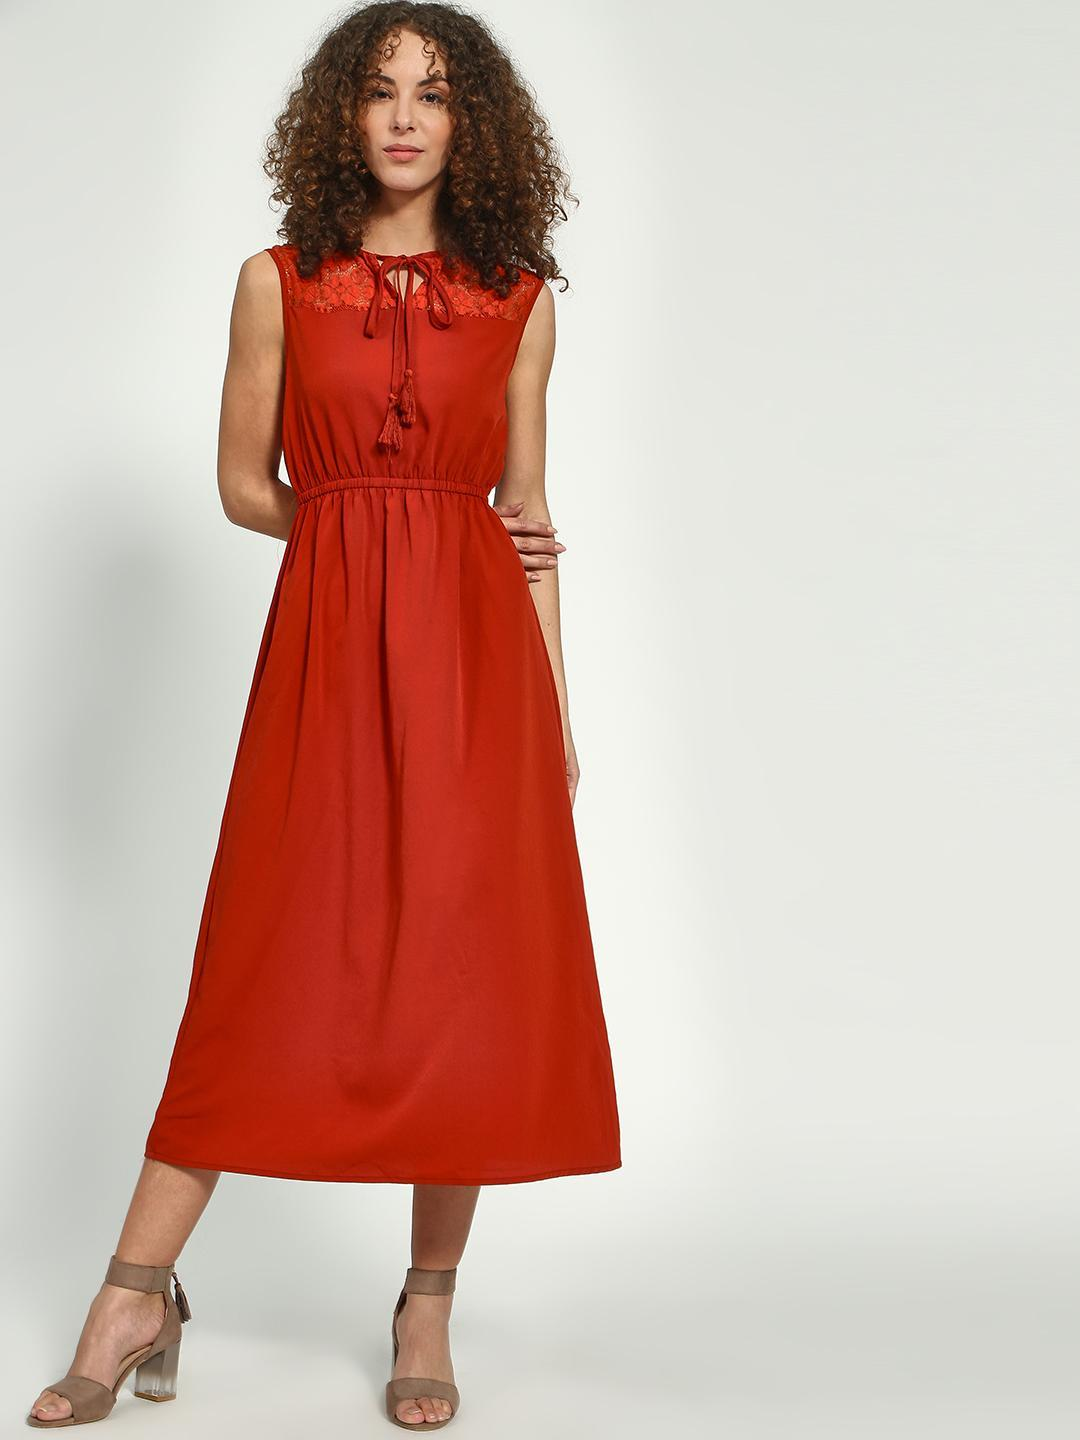 Oxolloxo Rust Classic Sleeveless Dress 1